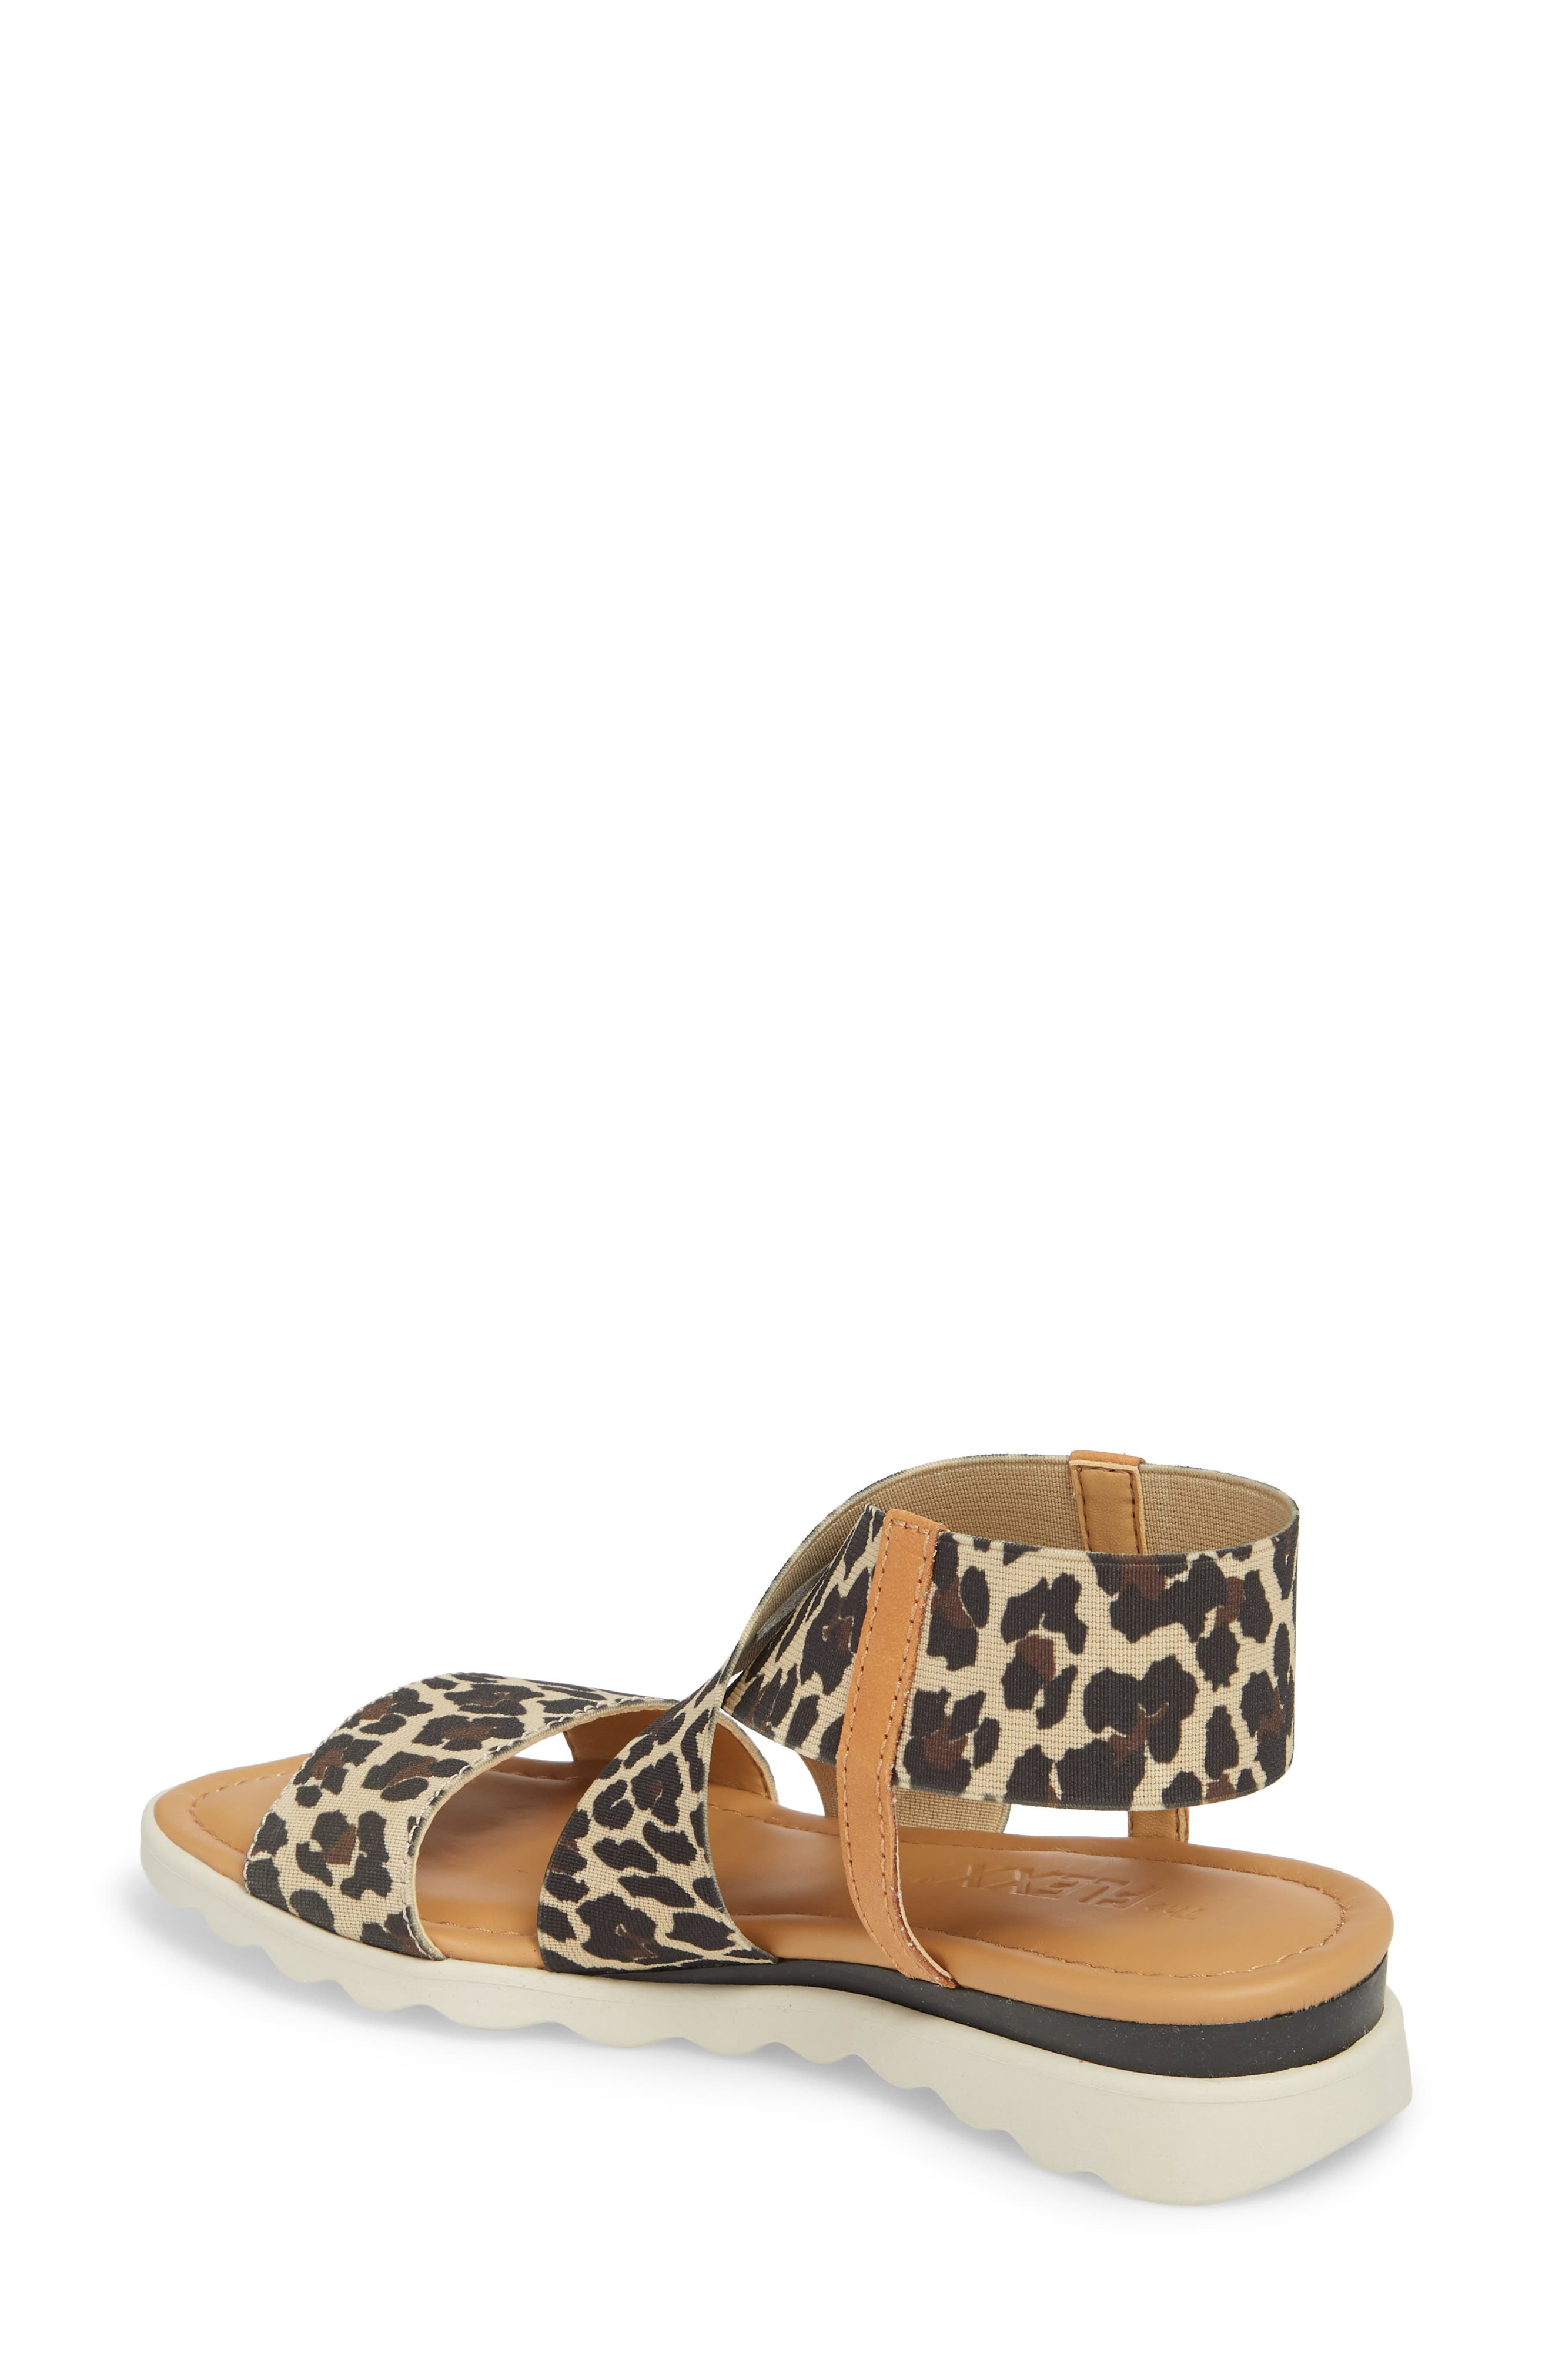 Extra Sandal,                             Alternate thumbnail 2, color,                             DUNE LEOPARD FABRIC